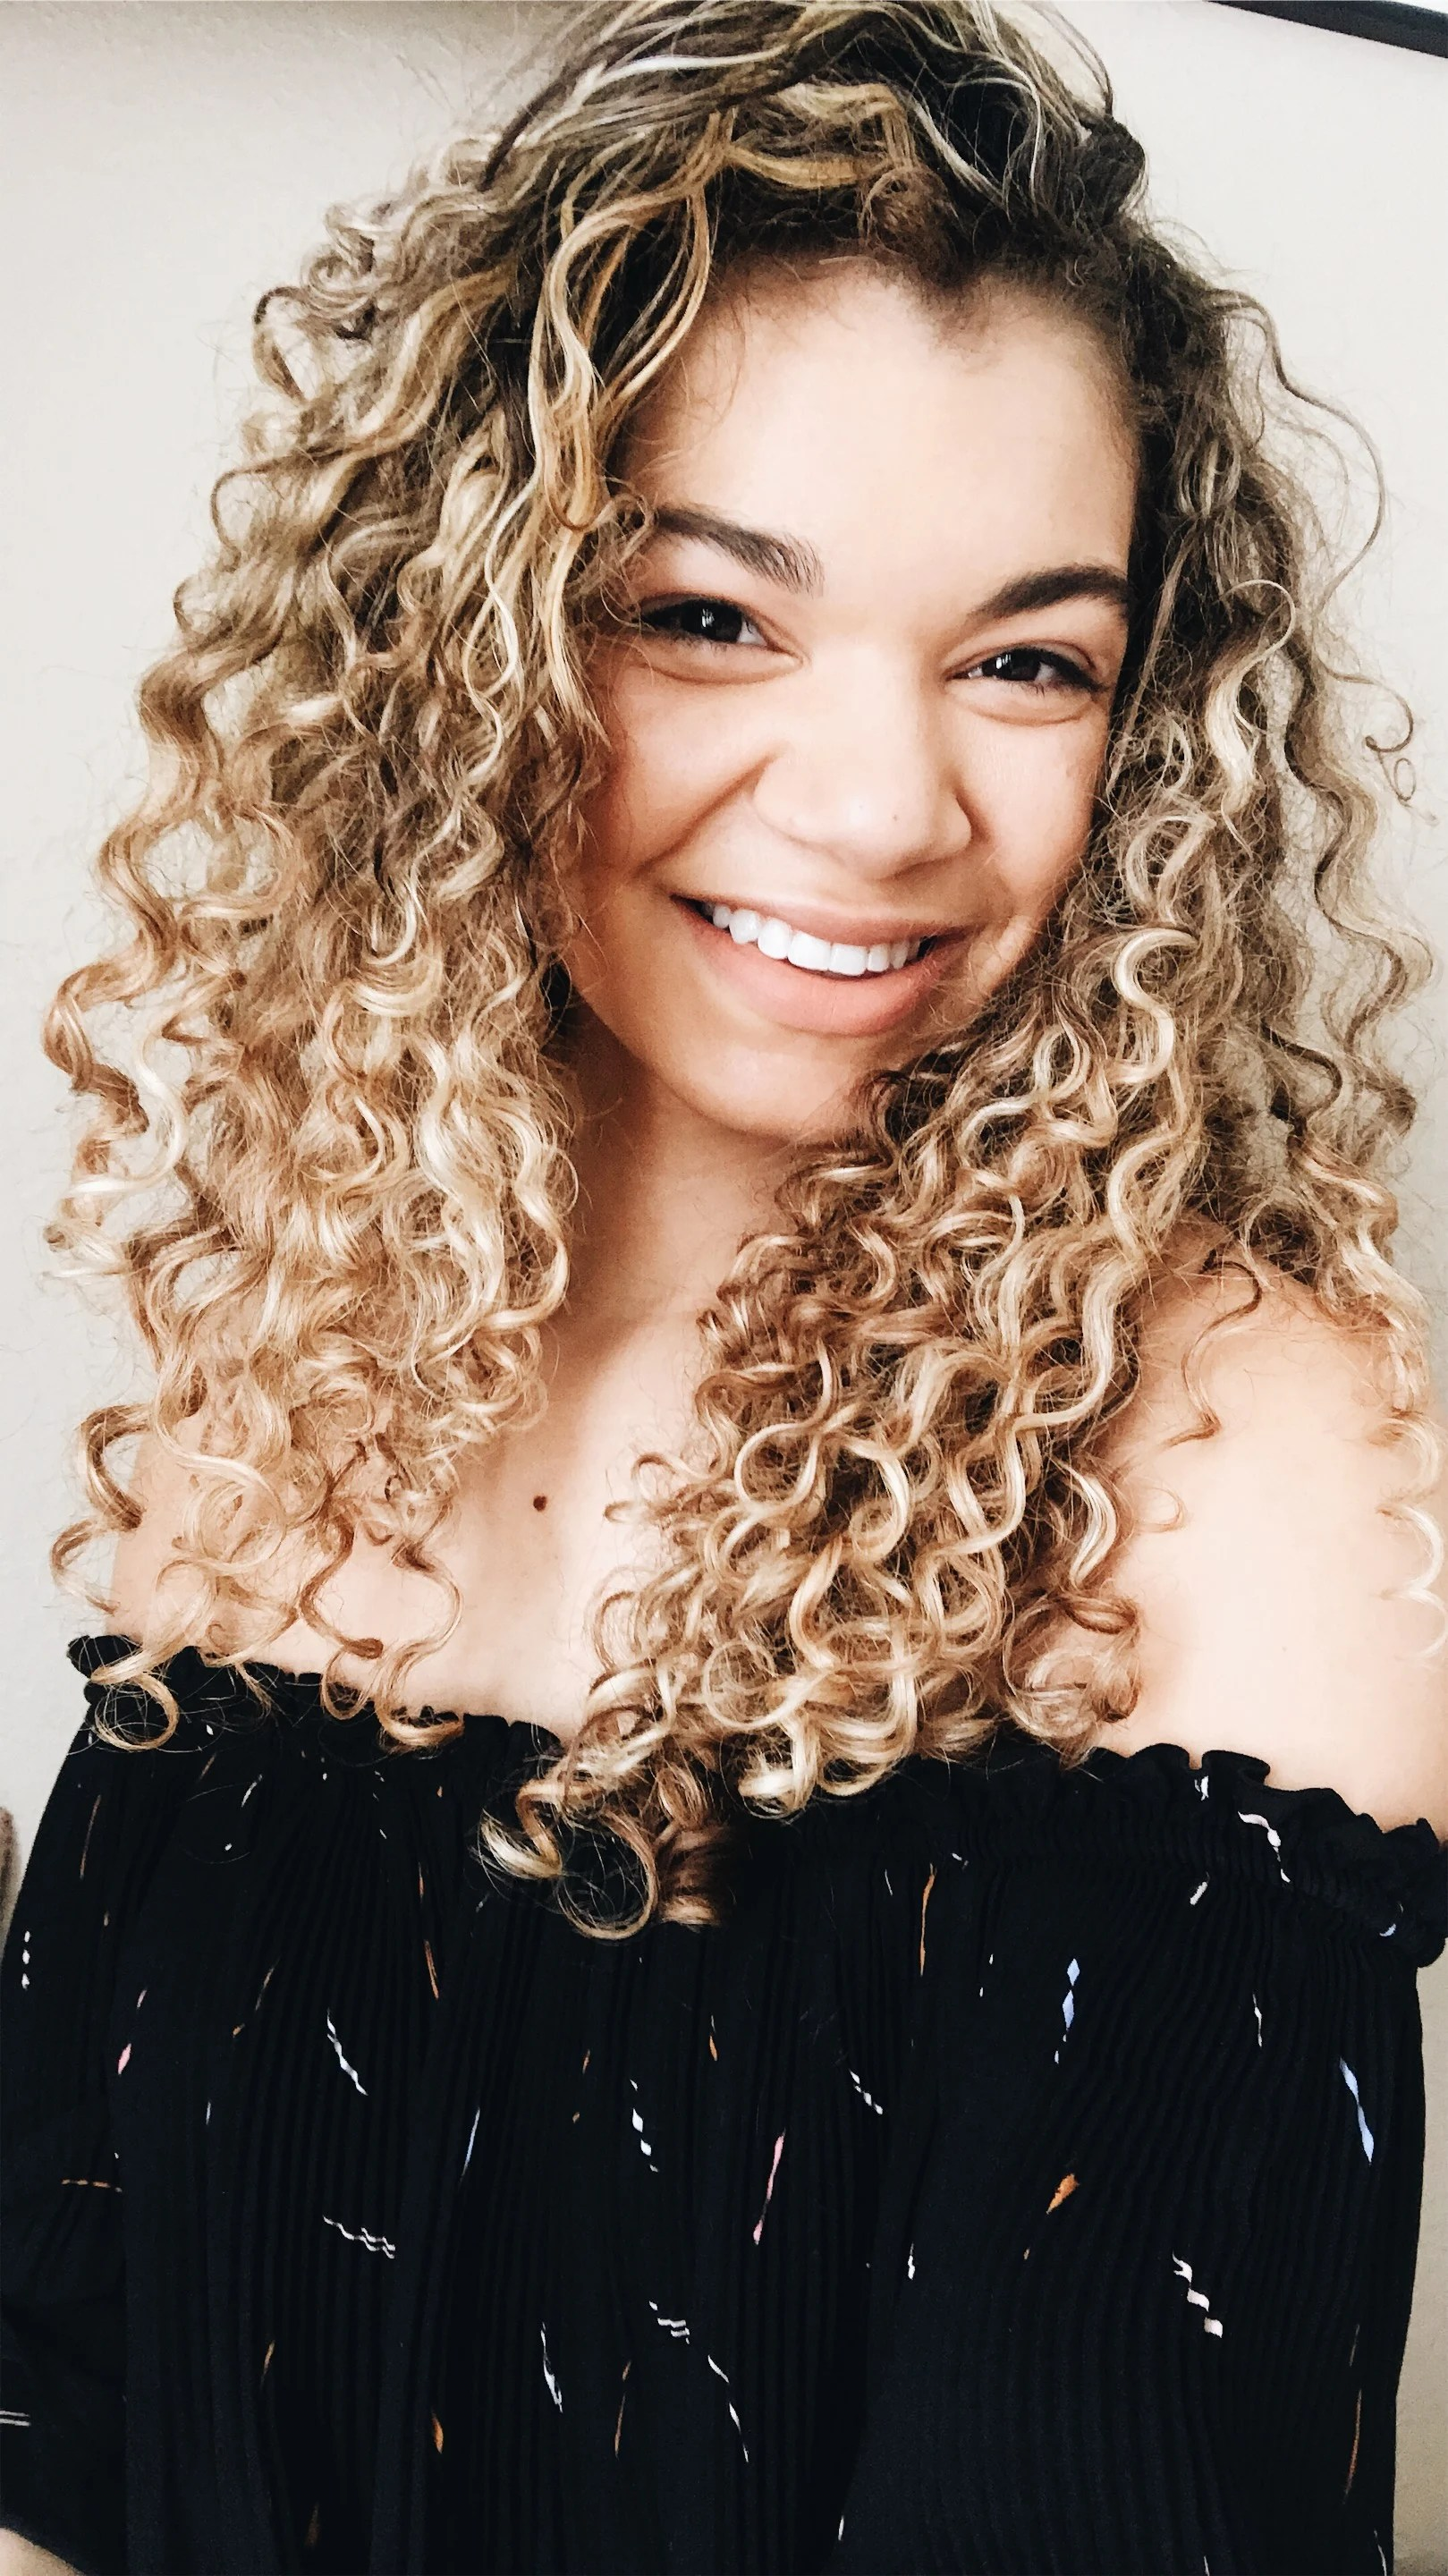 Do you have curly hair and want to know some curly hair product and tips to style it naturally? I break down my mixed curly hair and what I do!